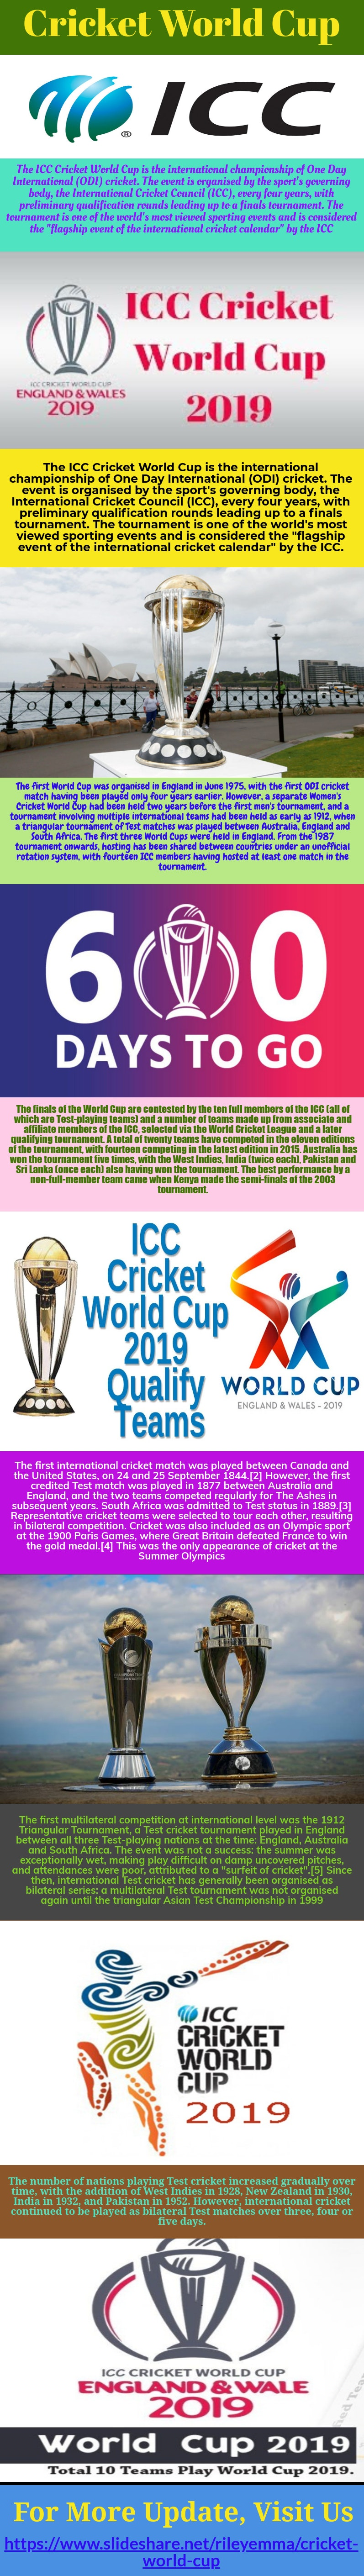 Free stock photo of Cricket World Cup